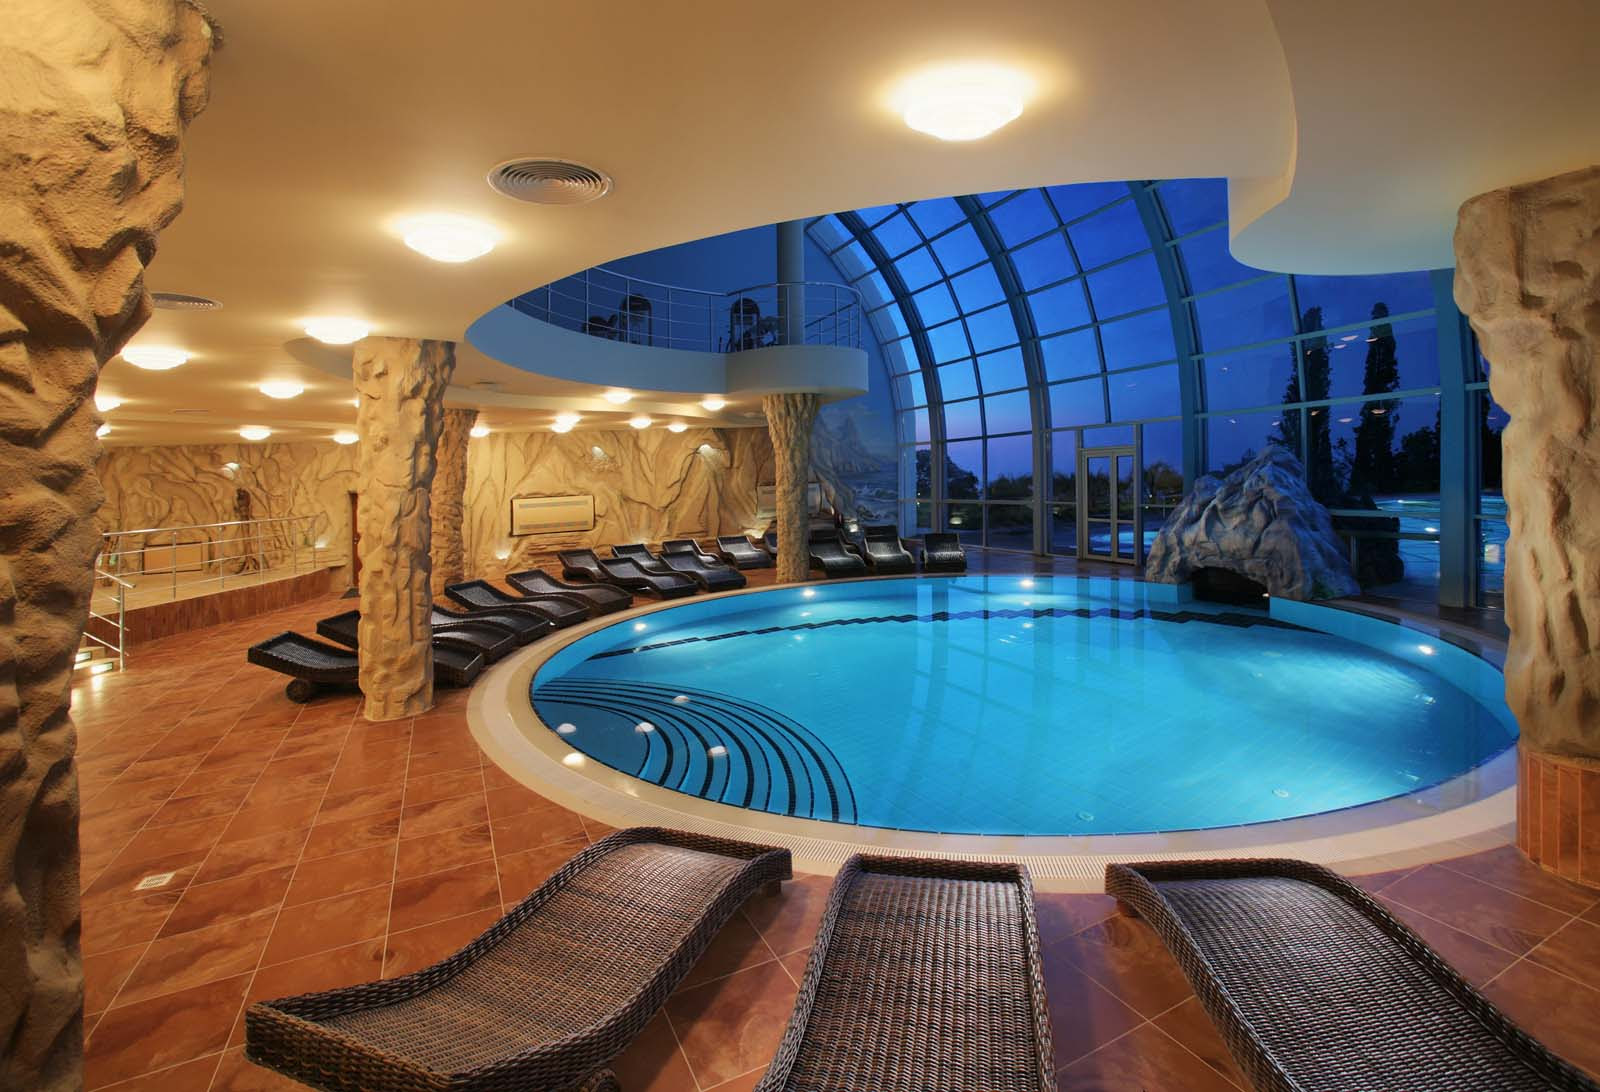 Design Swimming Pool Covers | A Home Decoration Blog